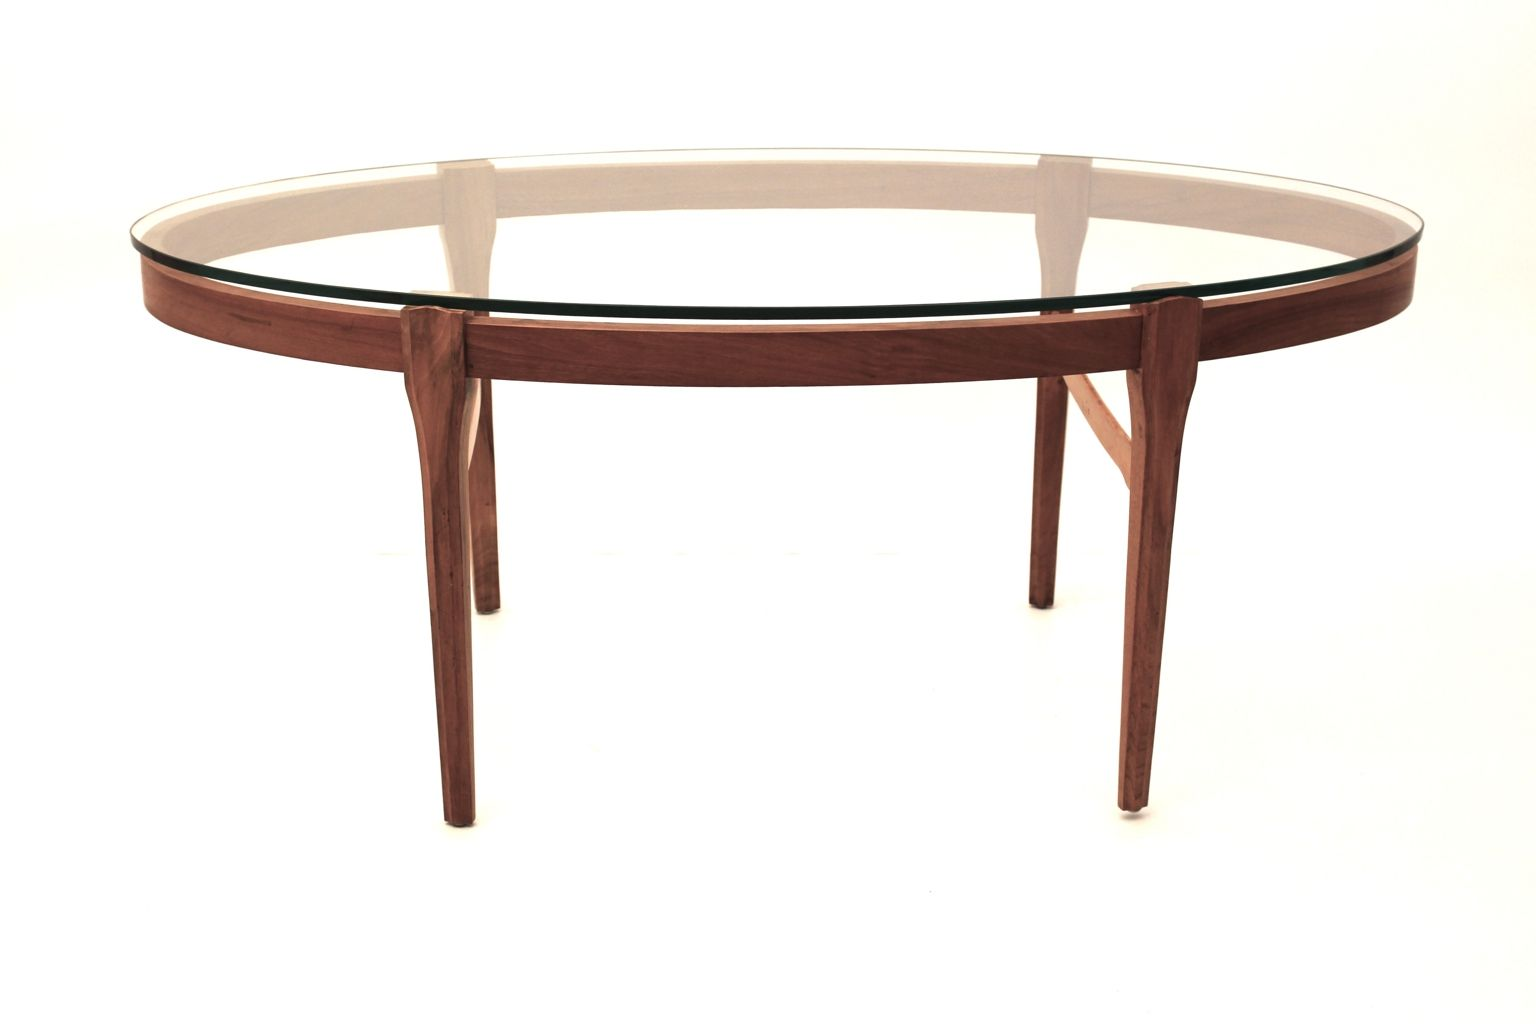 Viennese Walnut And Glass Coffee Table 1970s For Sale At Pamono